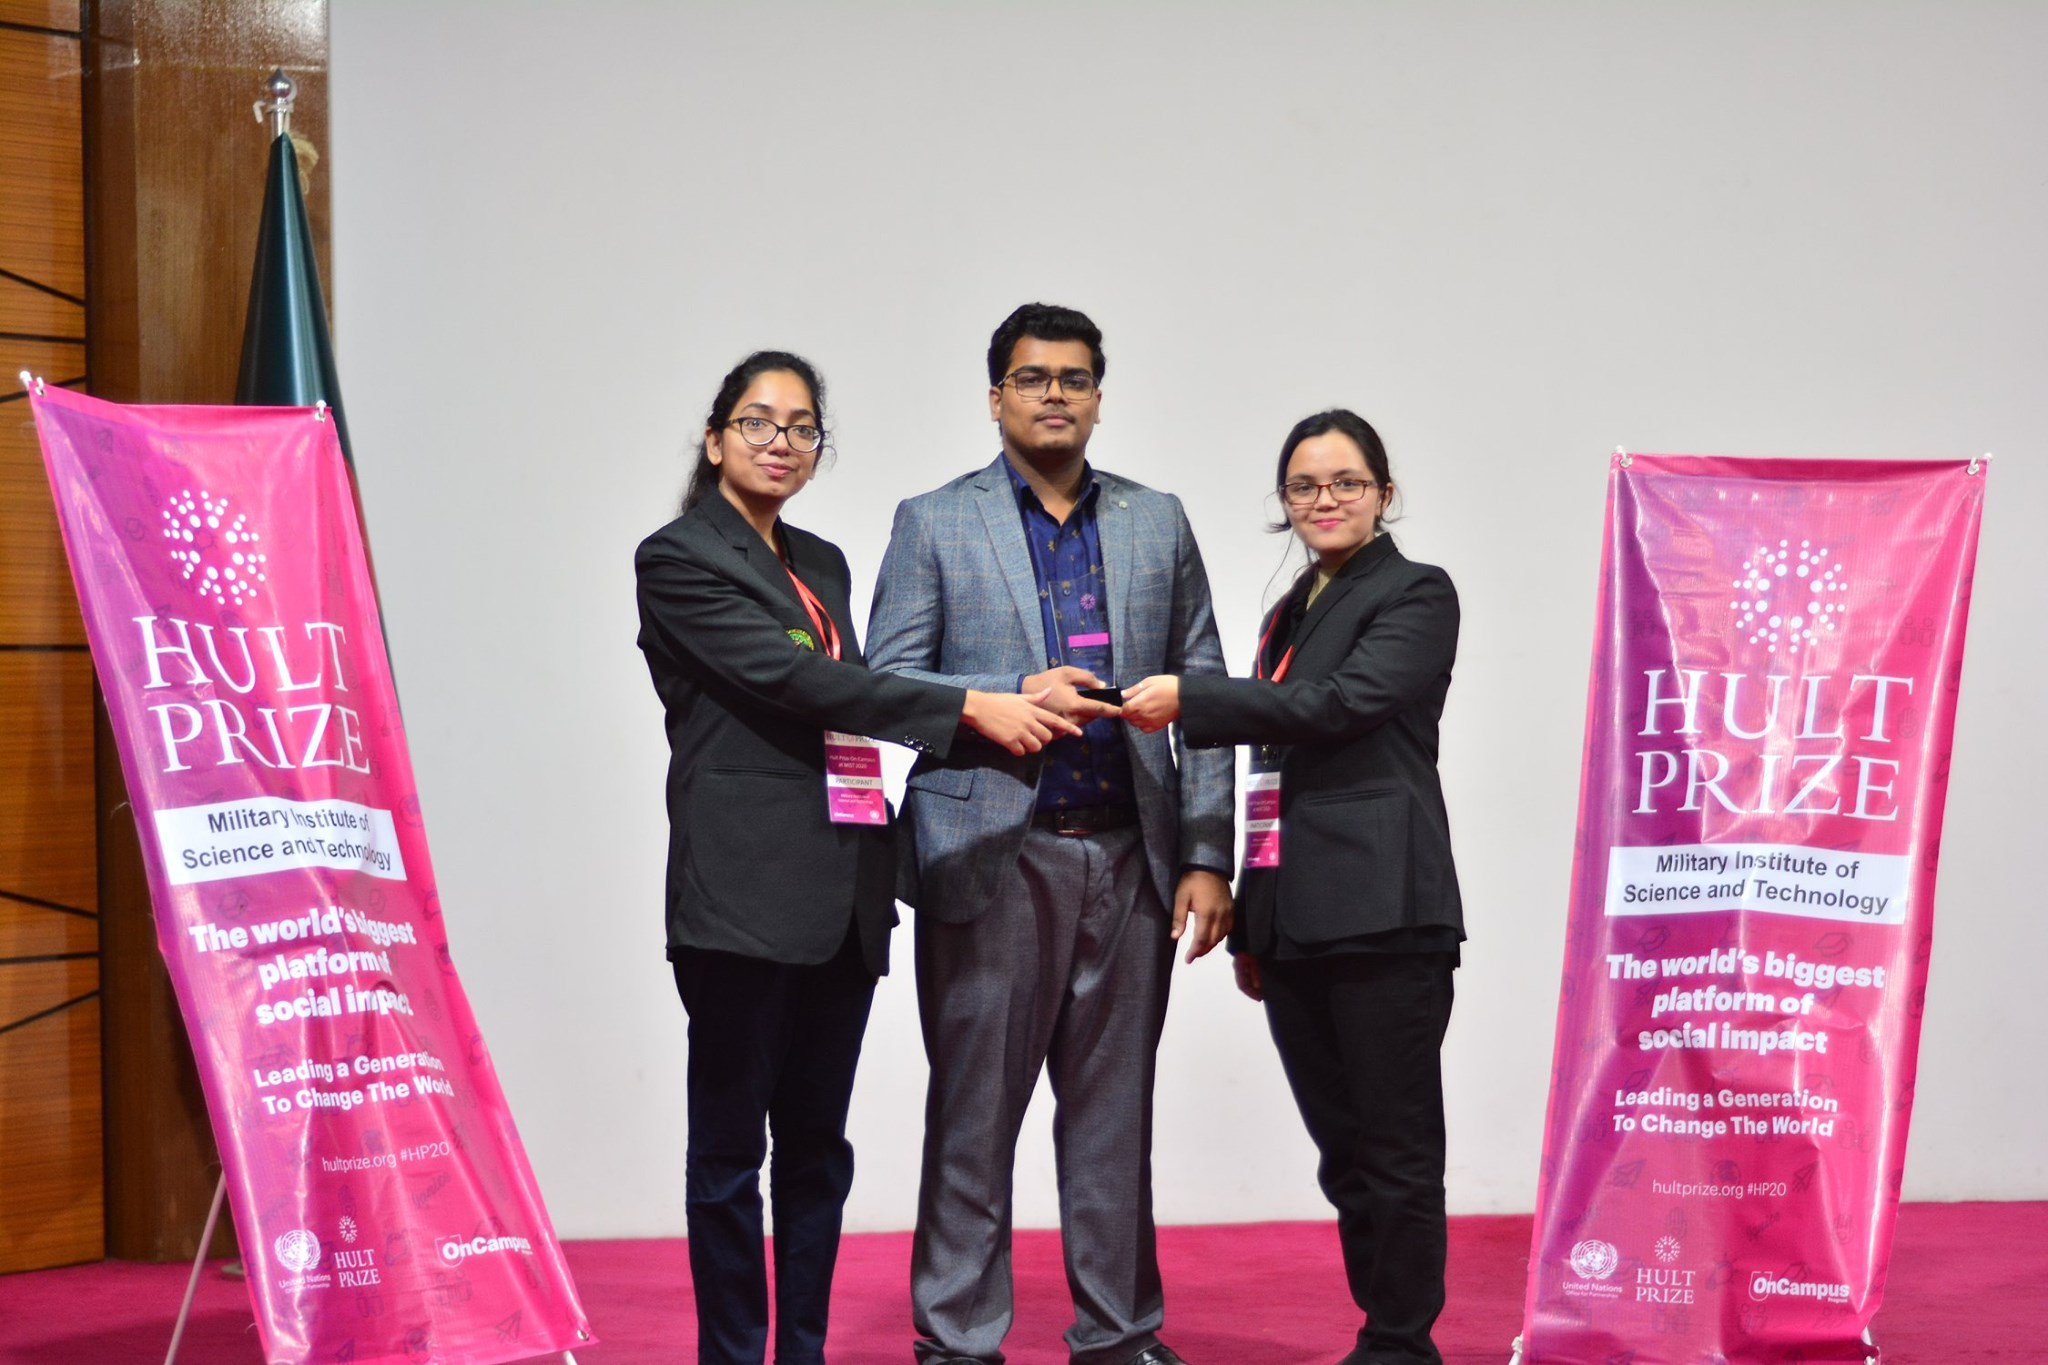 1ST RUNNER-UP OF THE ON-CAMPUS ROUND OF HULT PRIZE, 2020